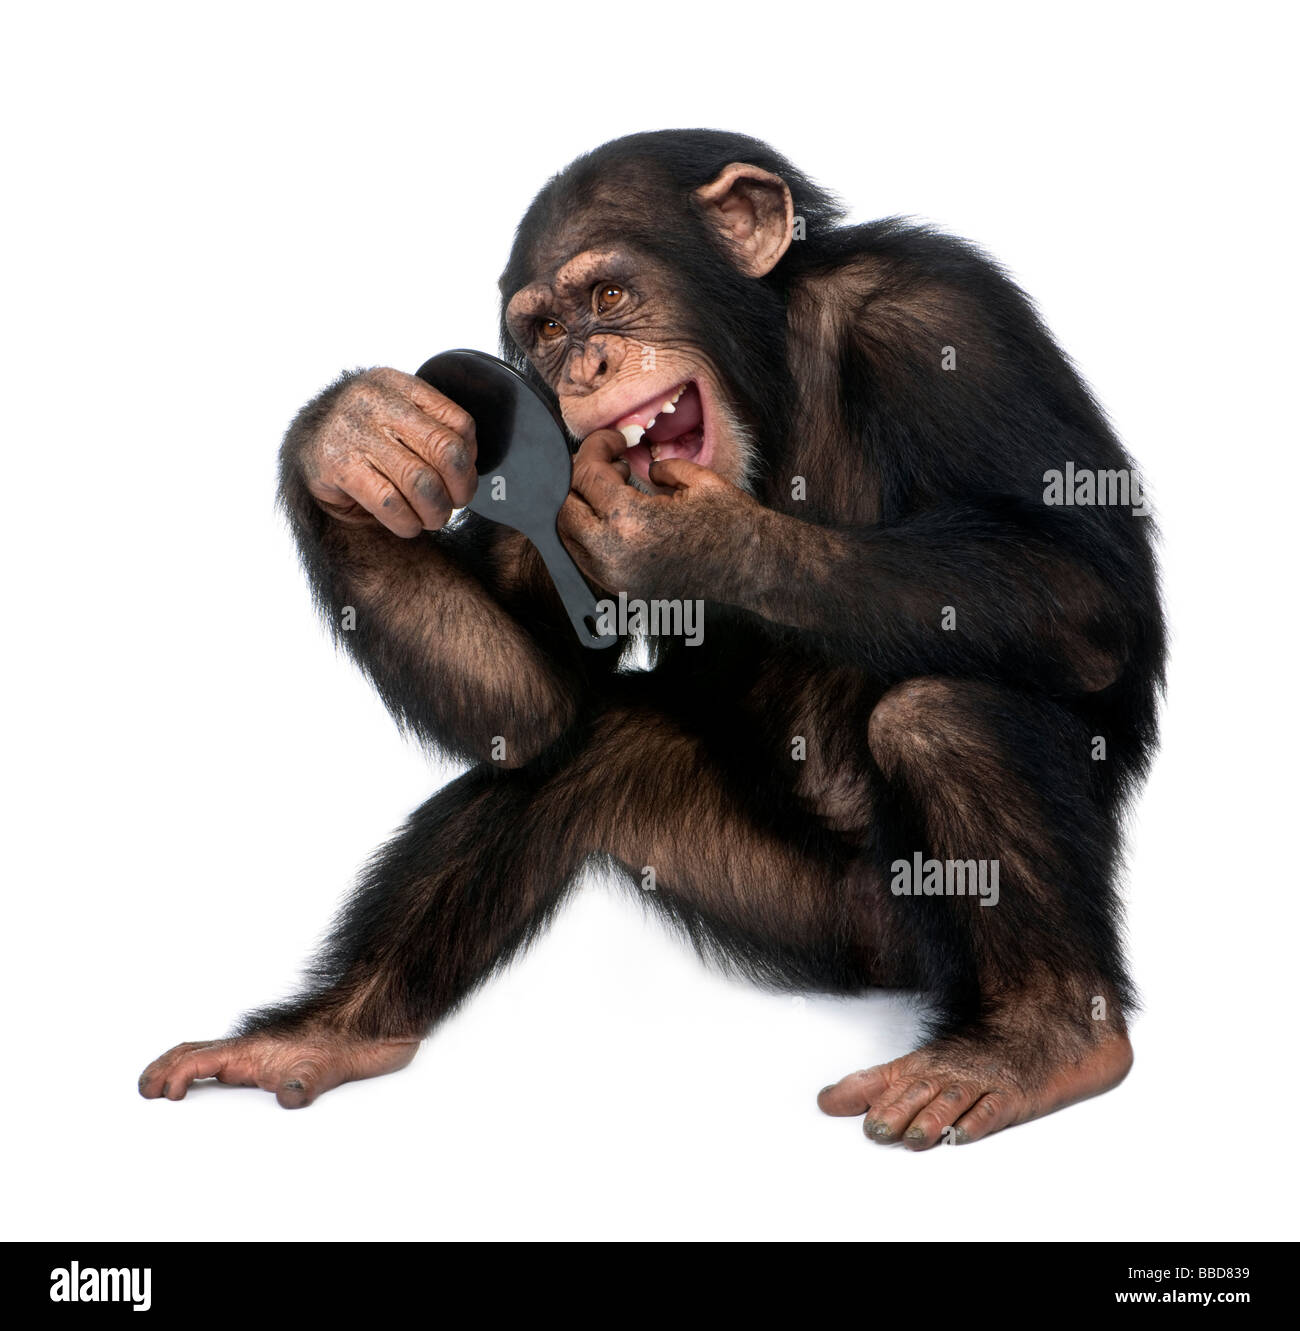 Young Chimpanzee looking at his teeth in a mirror in front of a white background - Stock Image